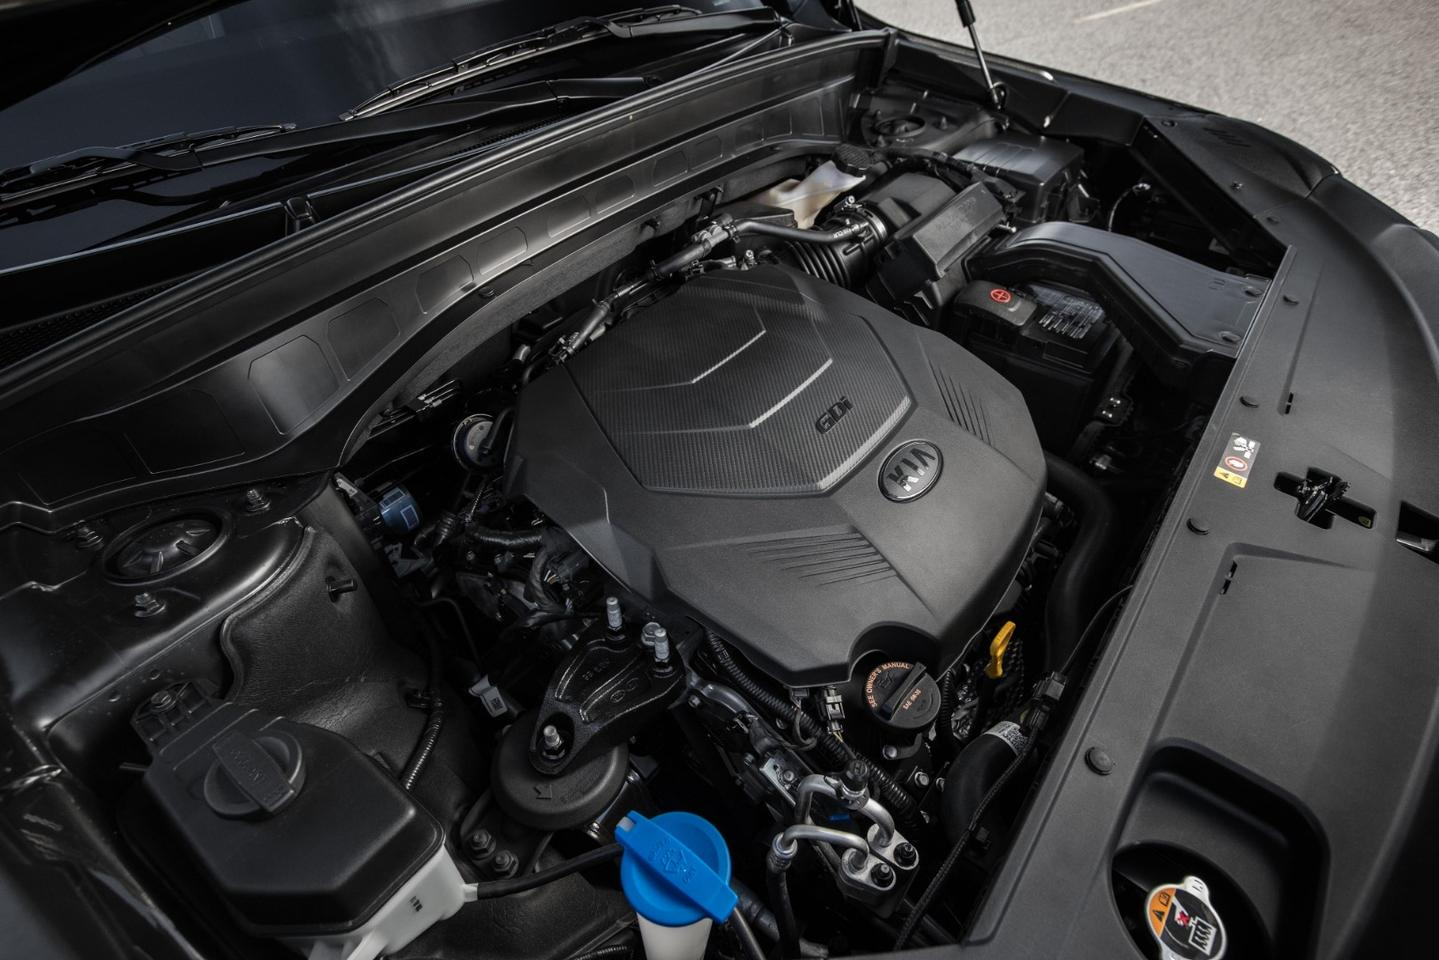 Powering the big new Telluride is a 3.8-liter V6 that produces 291 horsepower (217 kW) and 262 pound-feet (355 Nm) of torque